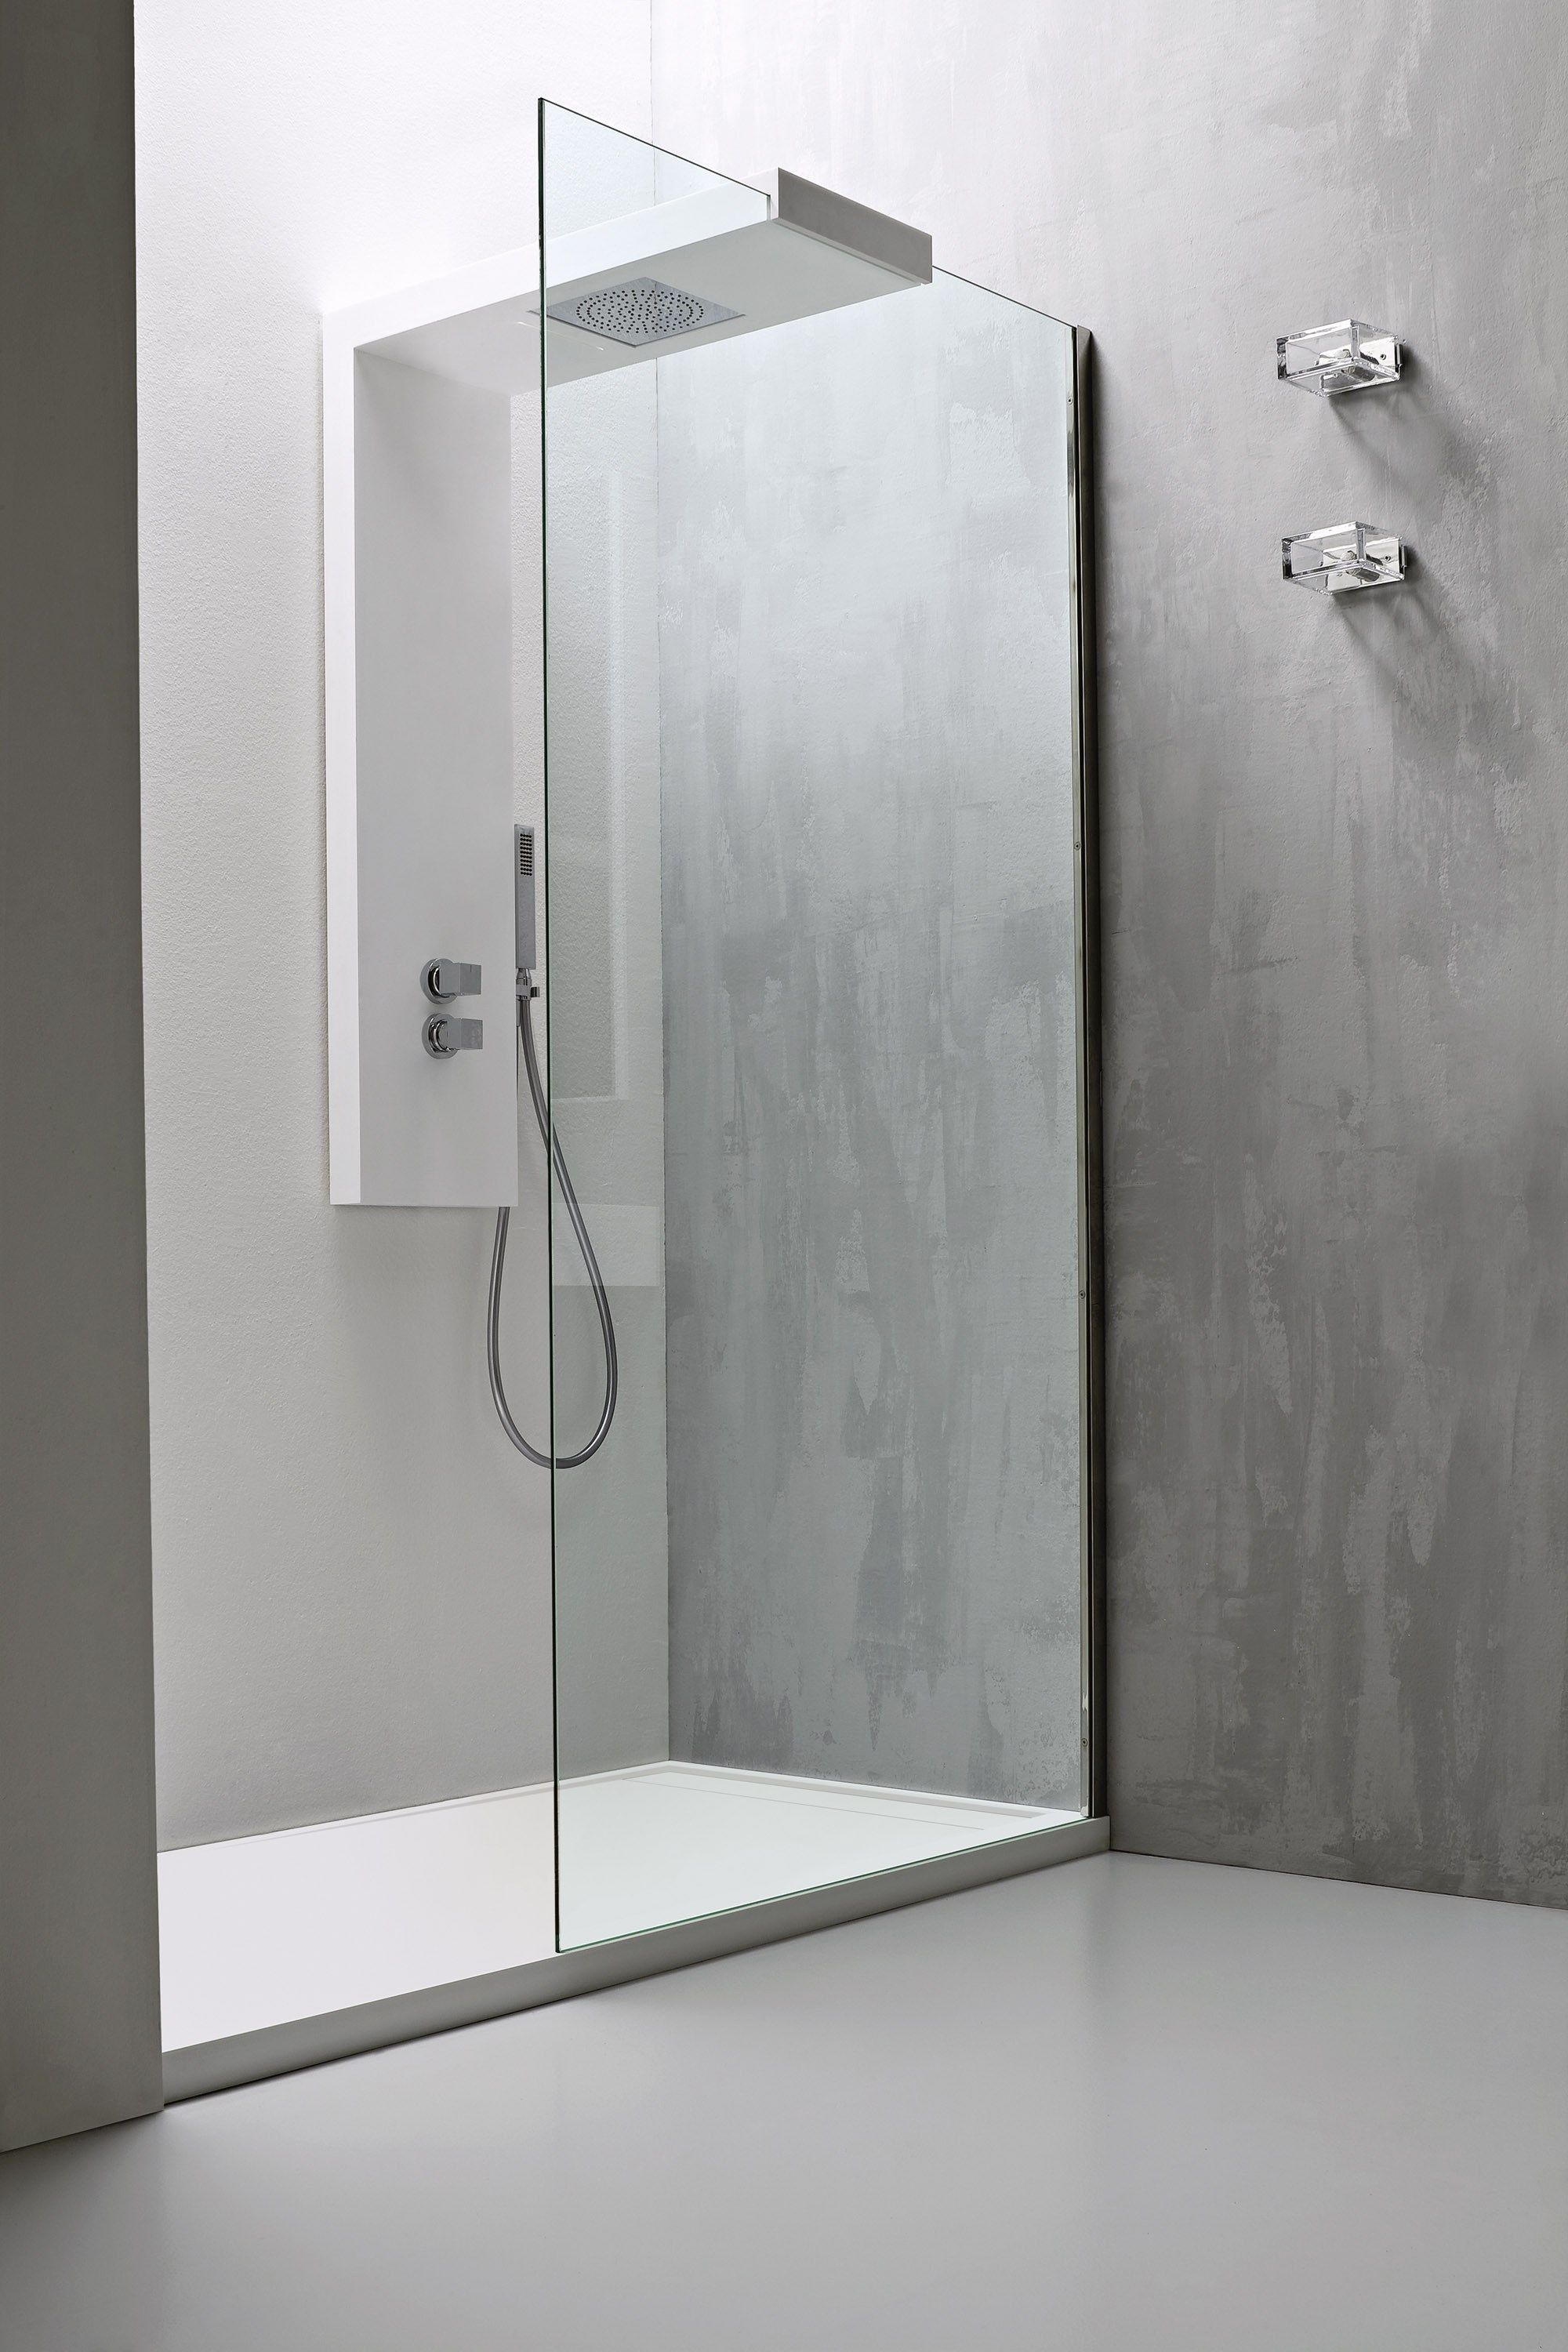 stand up shower faucet. Minimalist Glass Shower Panels With Frameless Door And Double Chrome  Handle Faucet Feat Hand